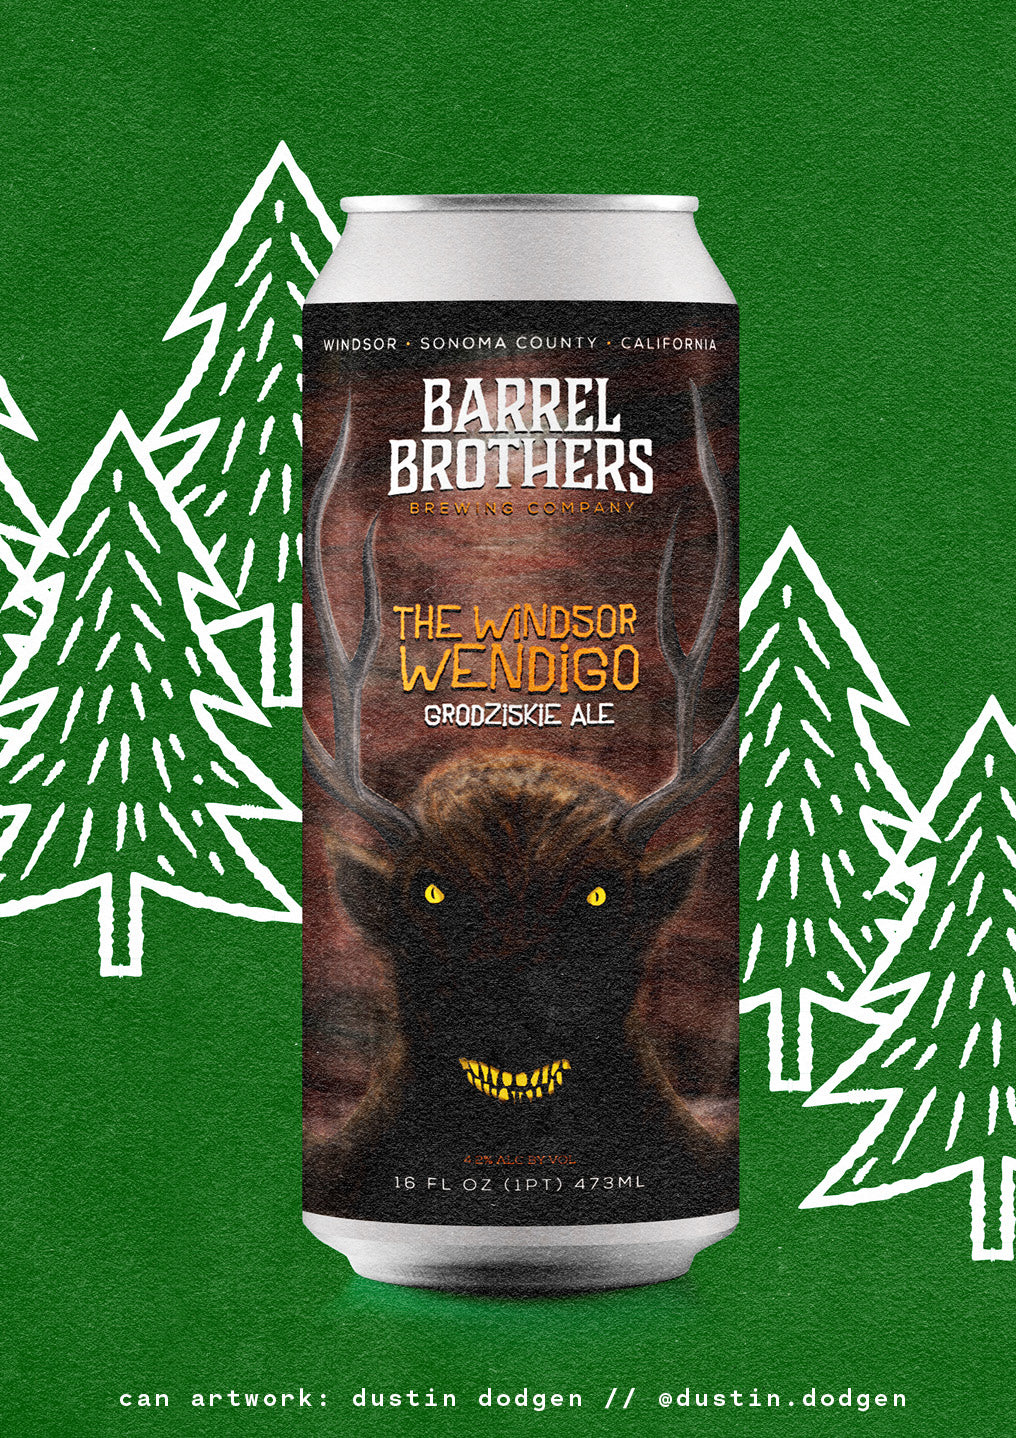 the windsor wendigo by barrel brothers brewing coompany